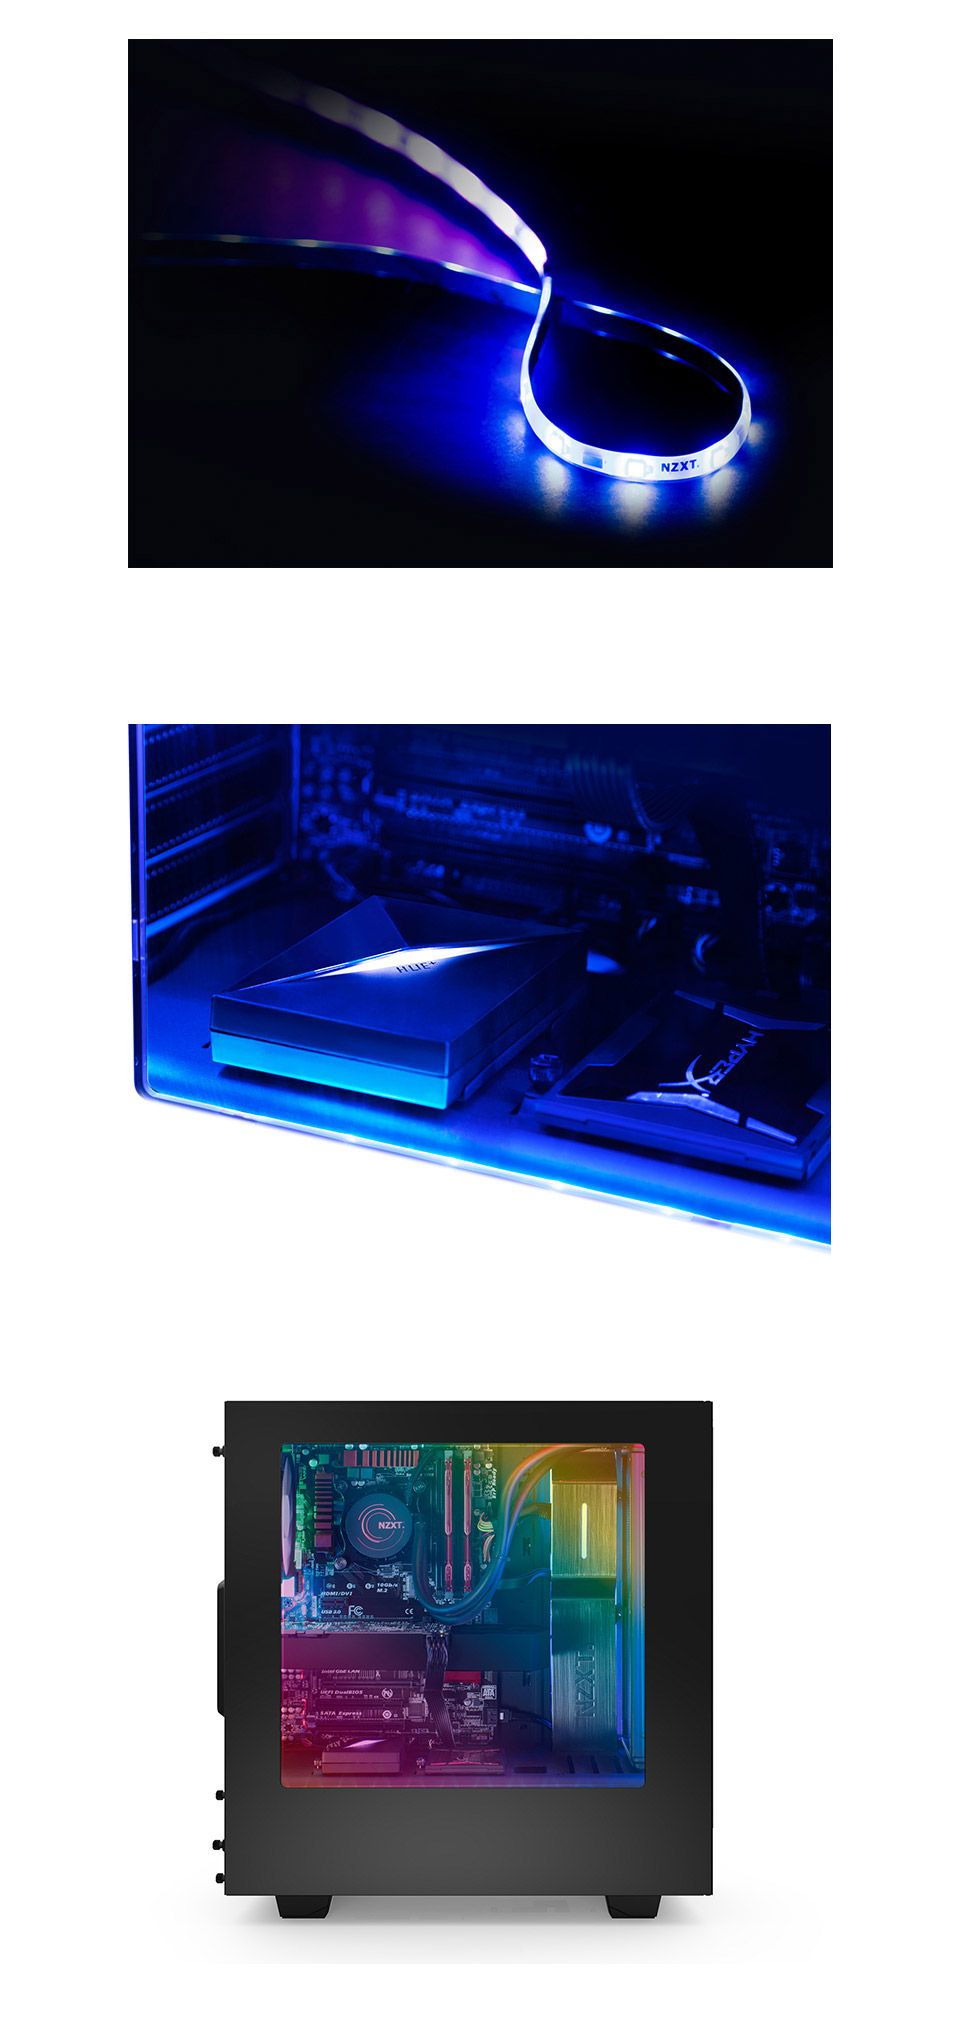 PC Case Gear NZXT Hue+ RGB Lighting Kit [AC-HUEPS-M1] -  sc 1 st  Pinterest & NZXT Hue+ RGB Lighting Kit | Pc cases PC and Software